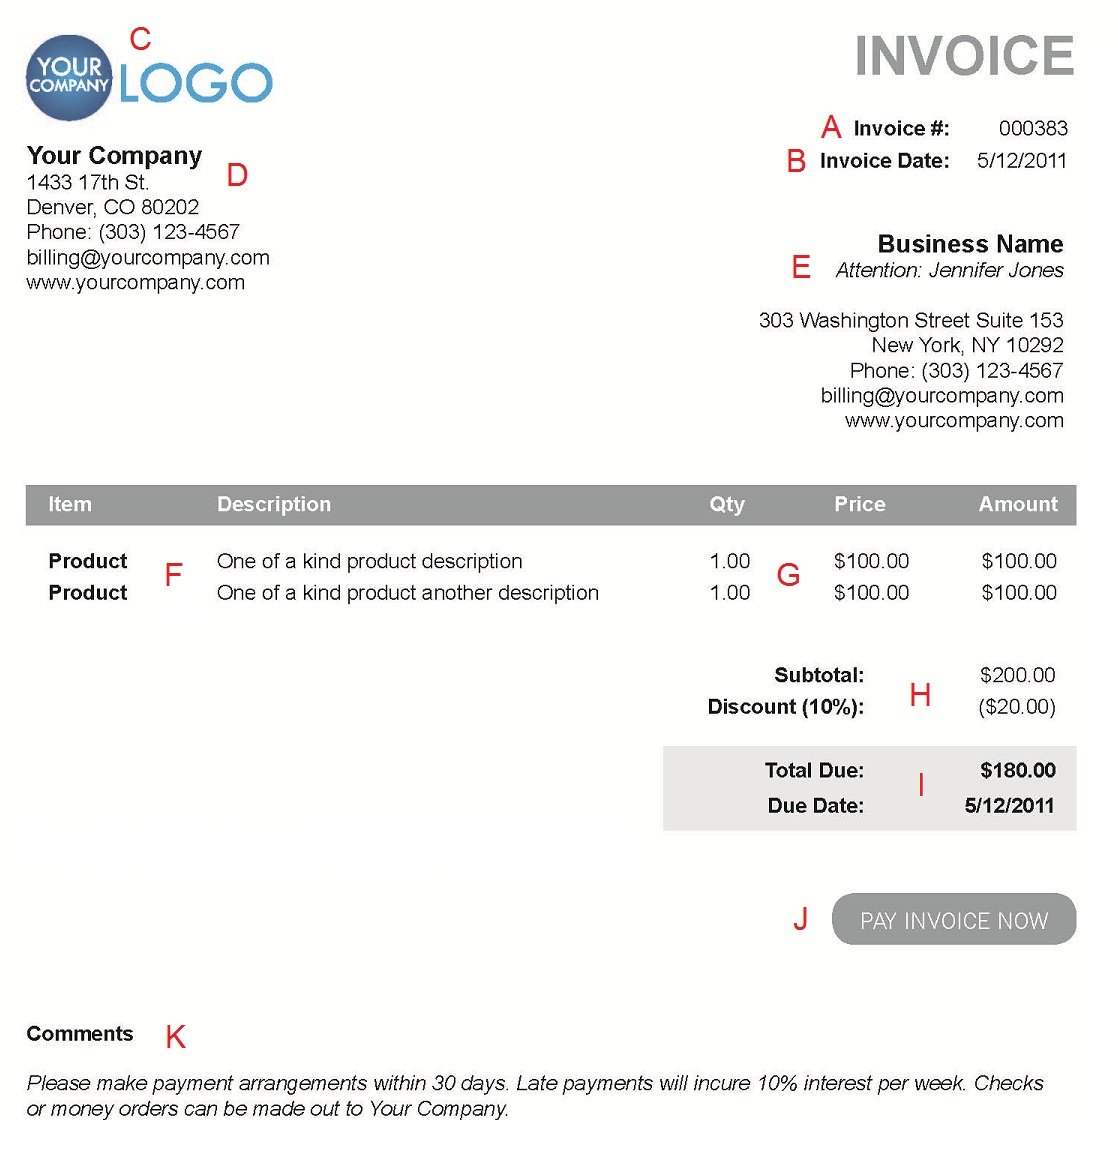 Centralasianshepherdus  Remarkable The  Different Sections Of An Electronic Payment Invoice With Magnificent A  With Extraordinary Work Invoice Template Pdf Also Self Employed Invoice Template Word In Addition Unpaid Invoice Letter Template And Free Simple Invoice Software As Well As Automobile Invoice Price Additionally Self Employed Invoice Template Uk From Paysimplecom With Centralasianshepherdus  Magnificent The  Different Sections Of An Electronic Payment Invoice With Extraordinary A  And Remarkable Work Invoice Template Pdf Also Self Employed Invoice Template Word In Addition Unpaid Invoice Letter Template From Paysimplecom